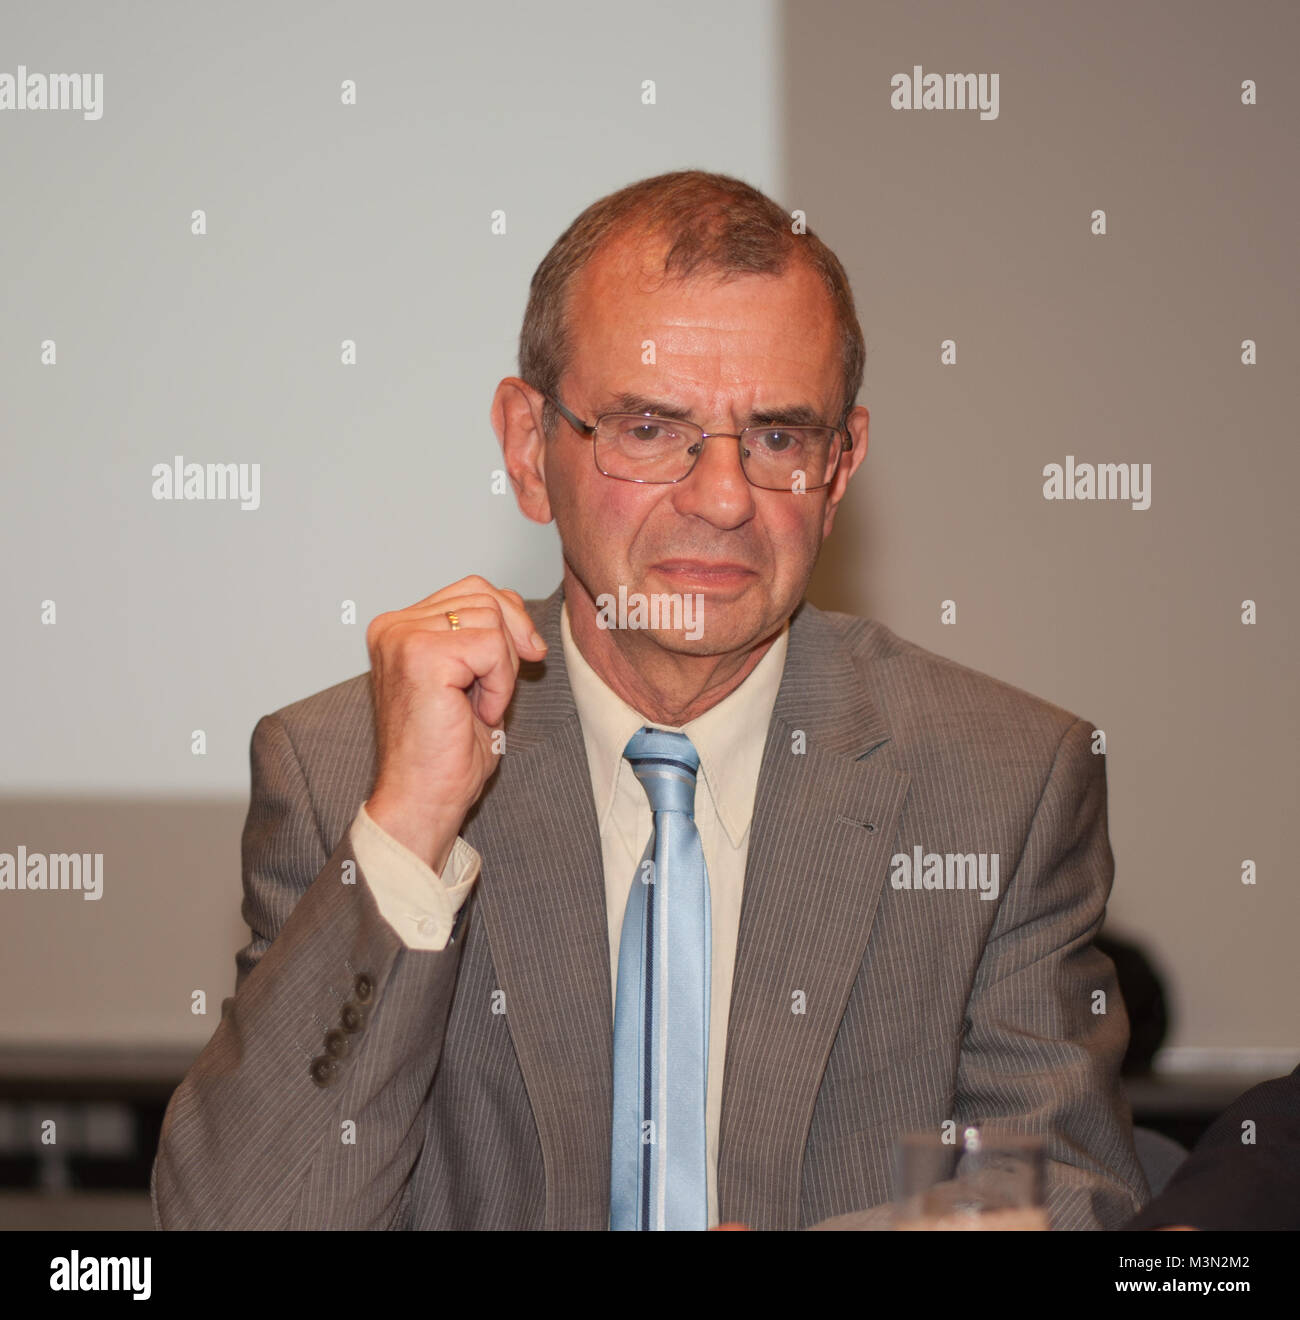 Dr Frank Dr Frank Stock Photos And Dr Frank Stock Images Alamy